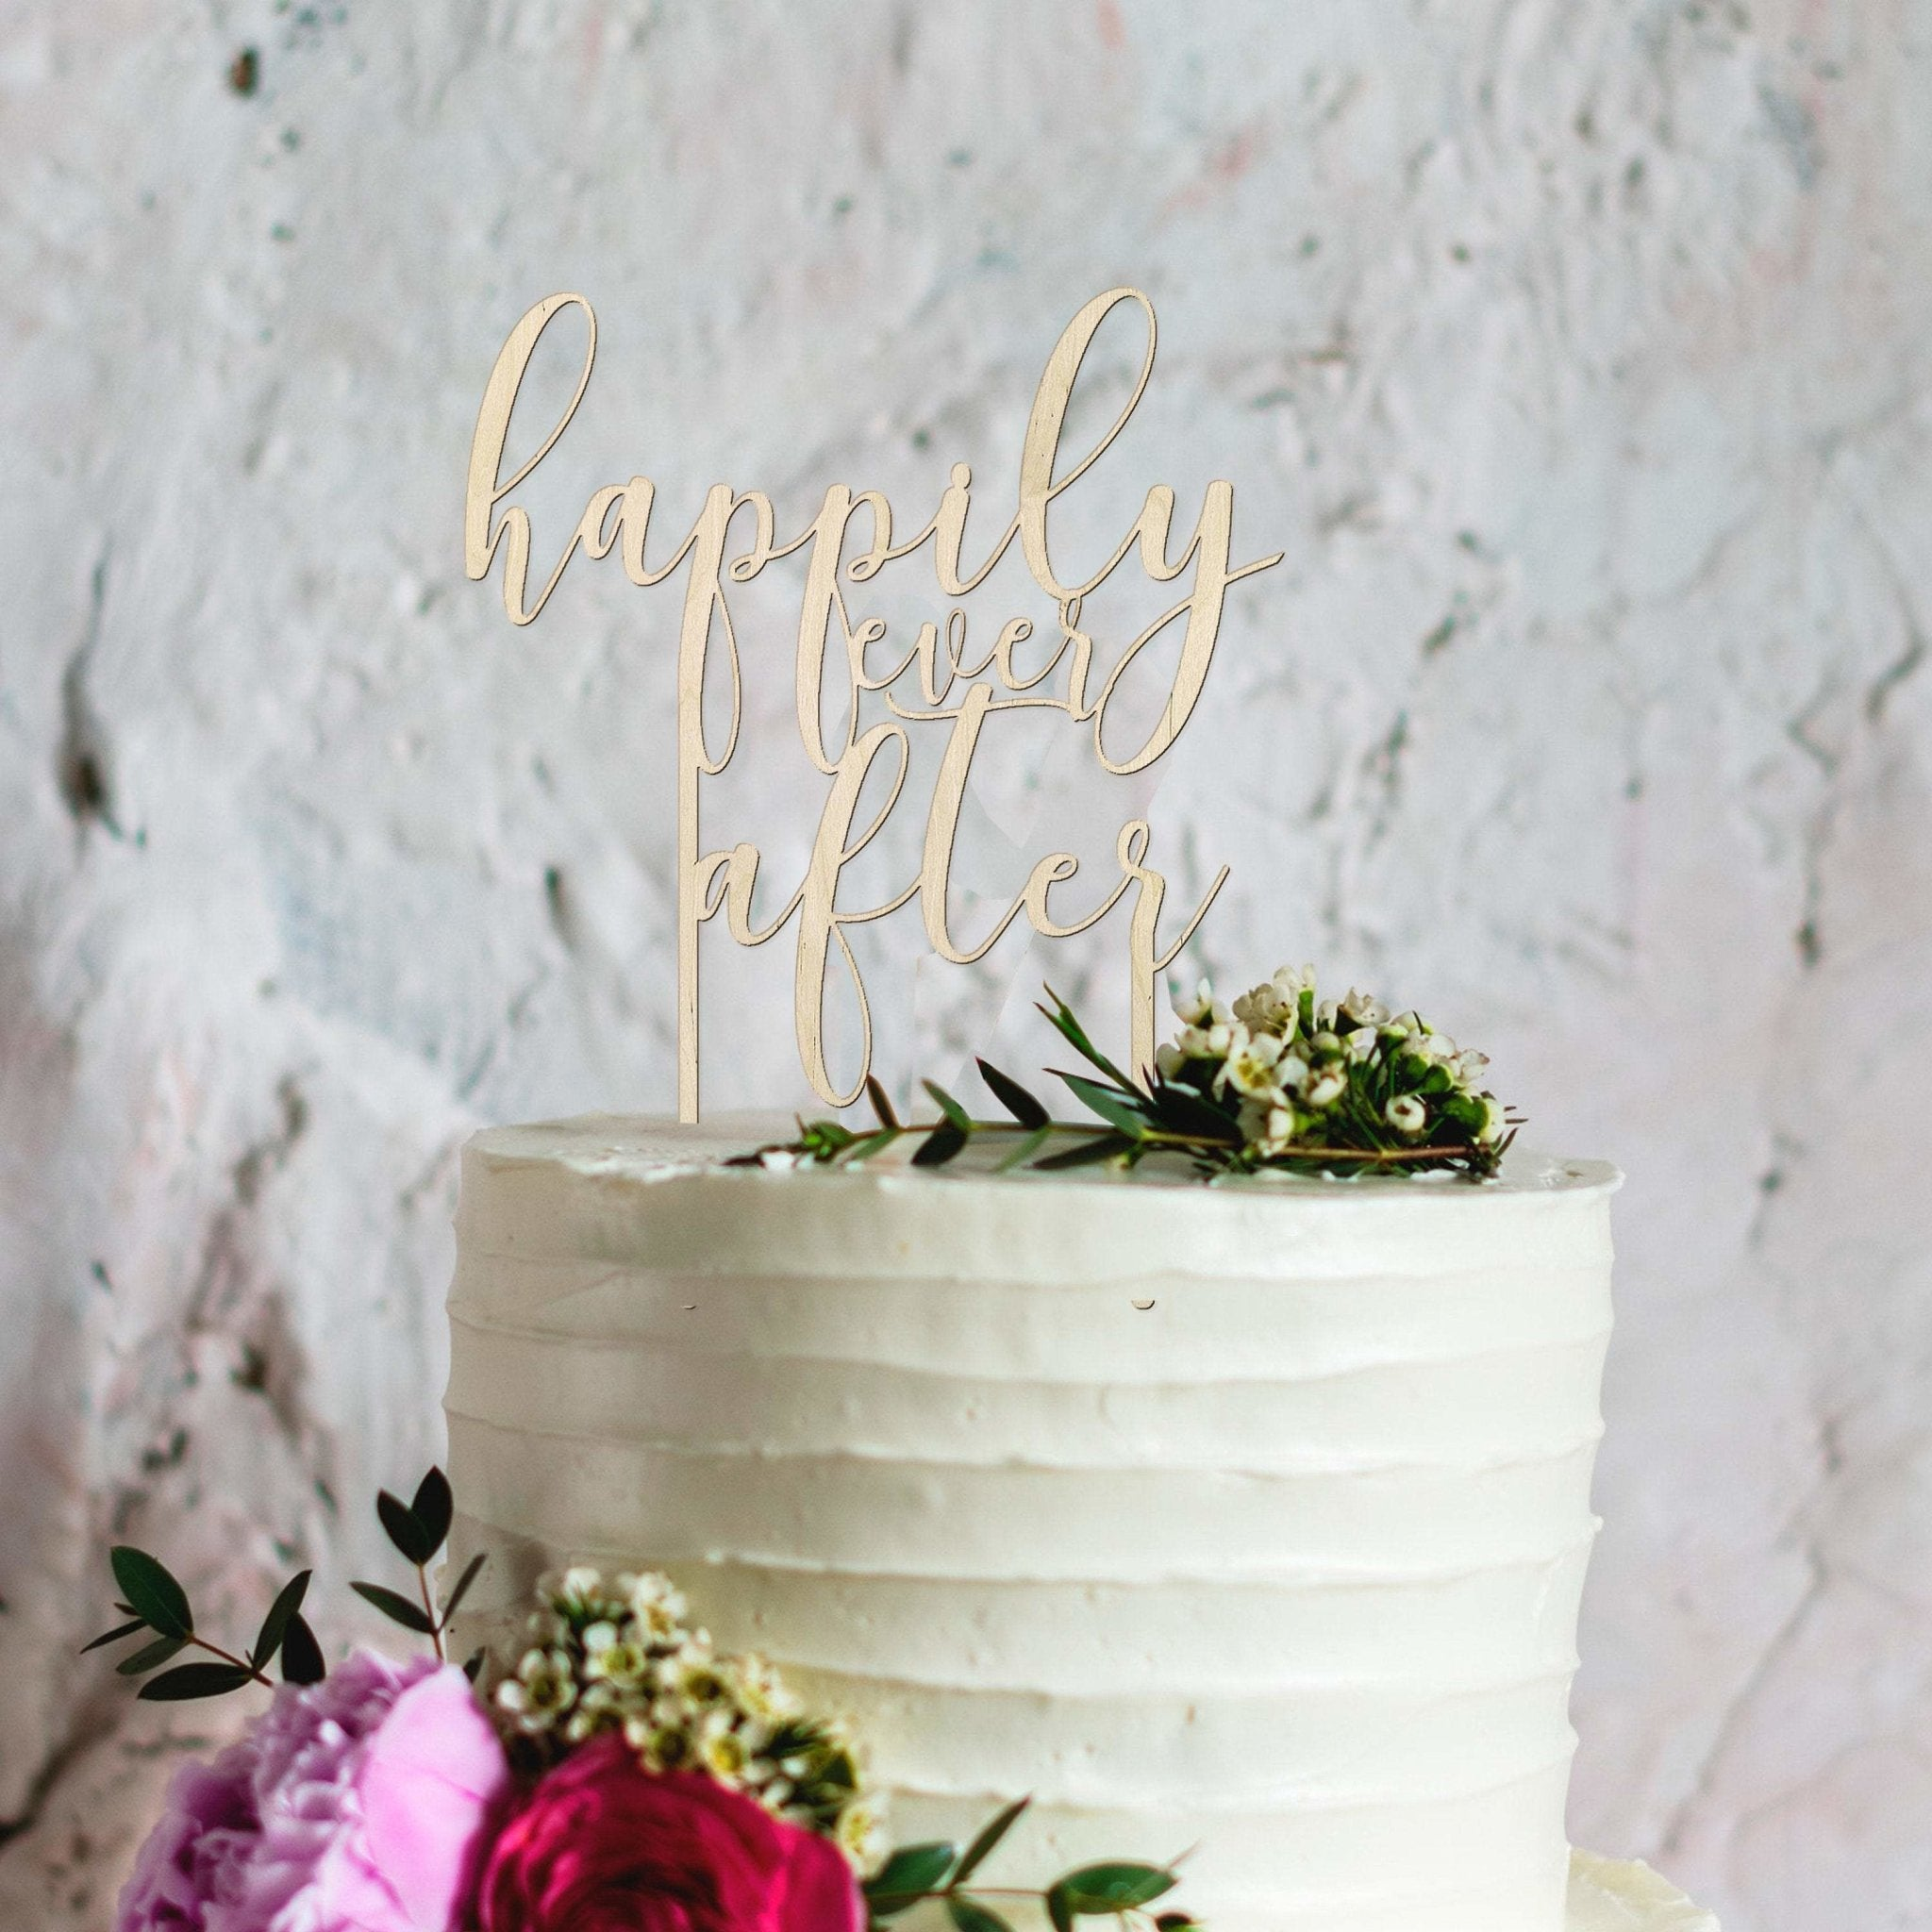 Happily ever after wooden reusable wedding cake topper